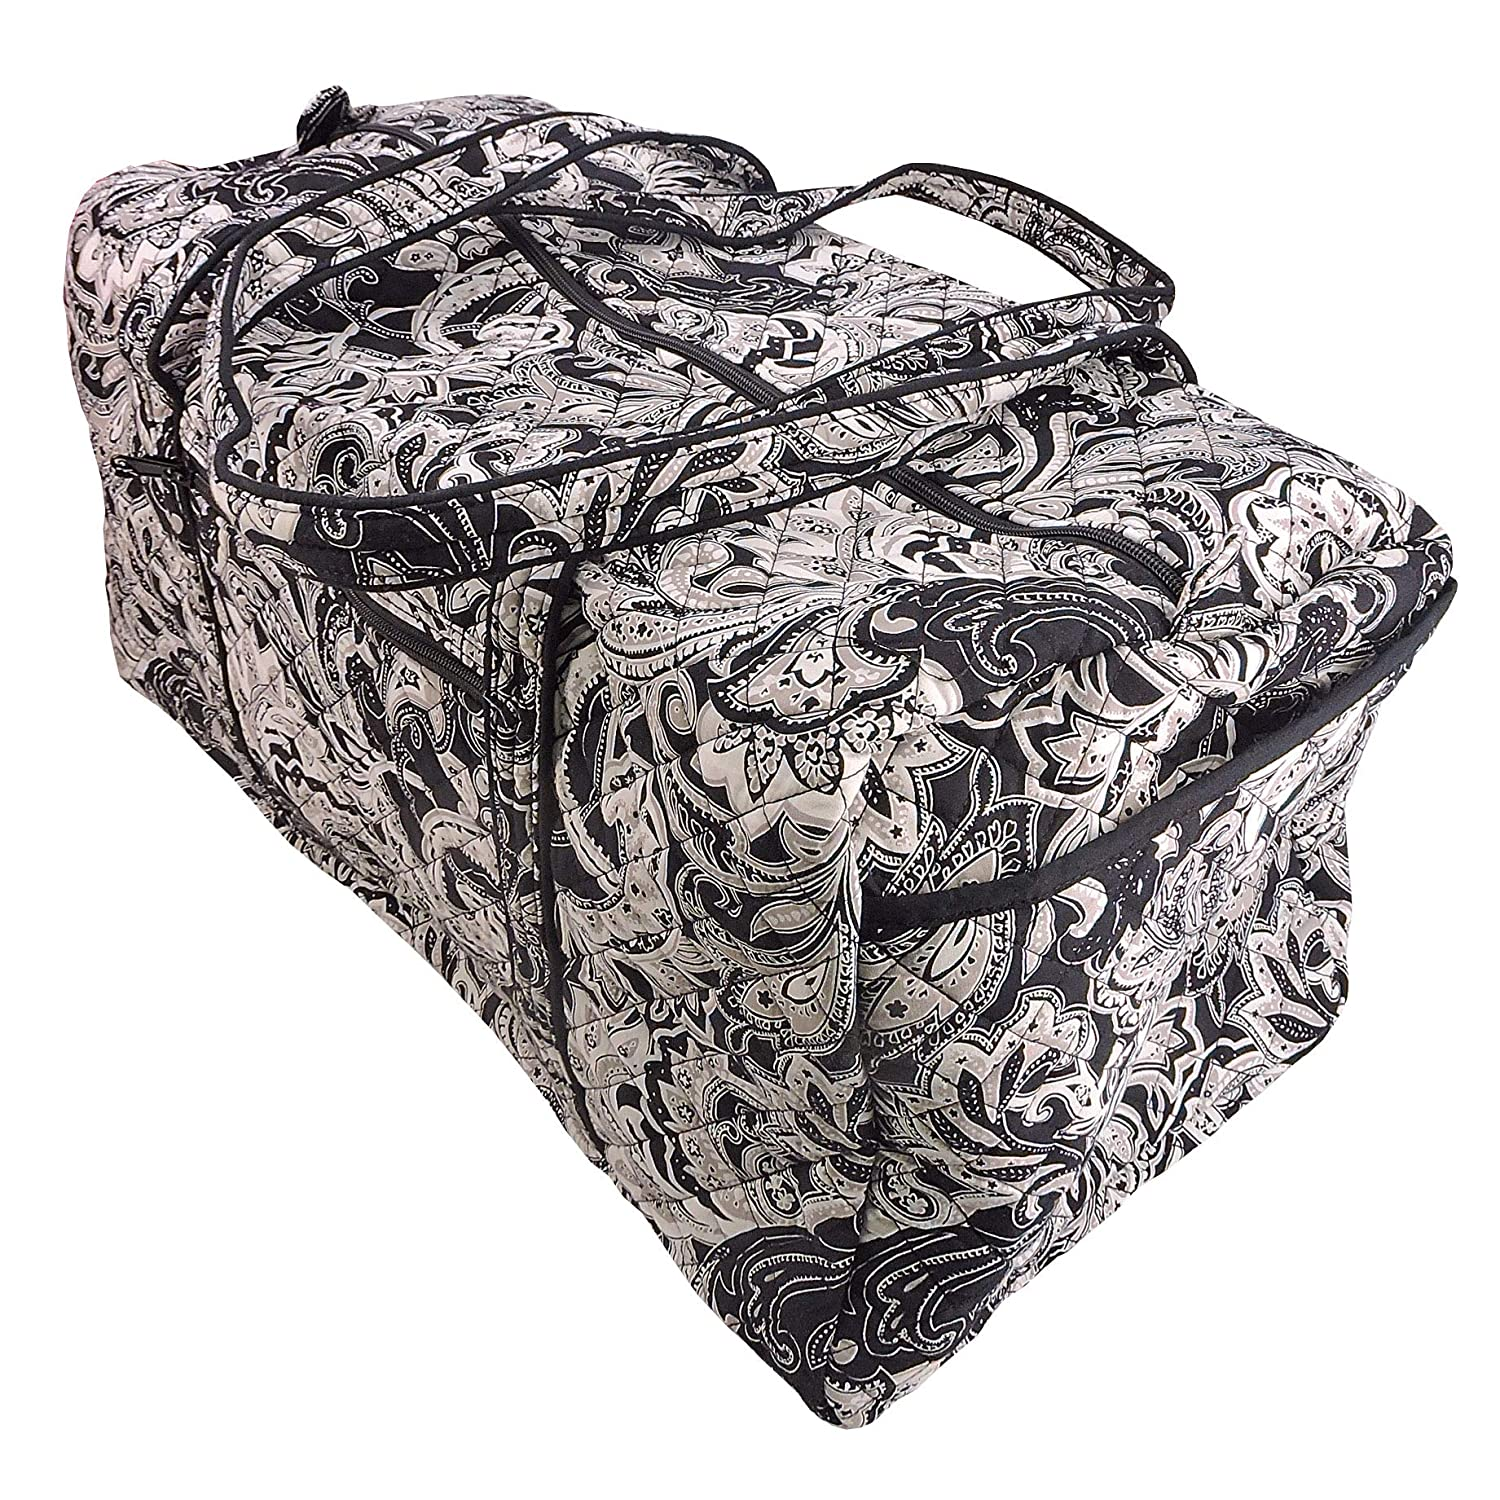 Members Mark Printed Duffle Bag In Black /& White Paisley